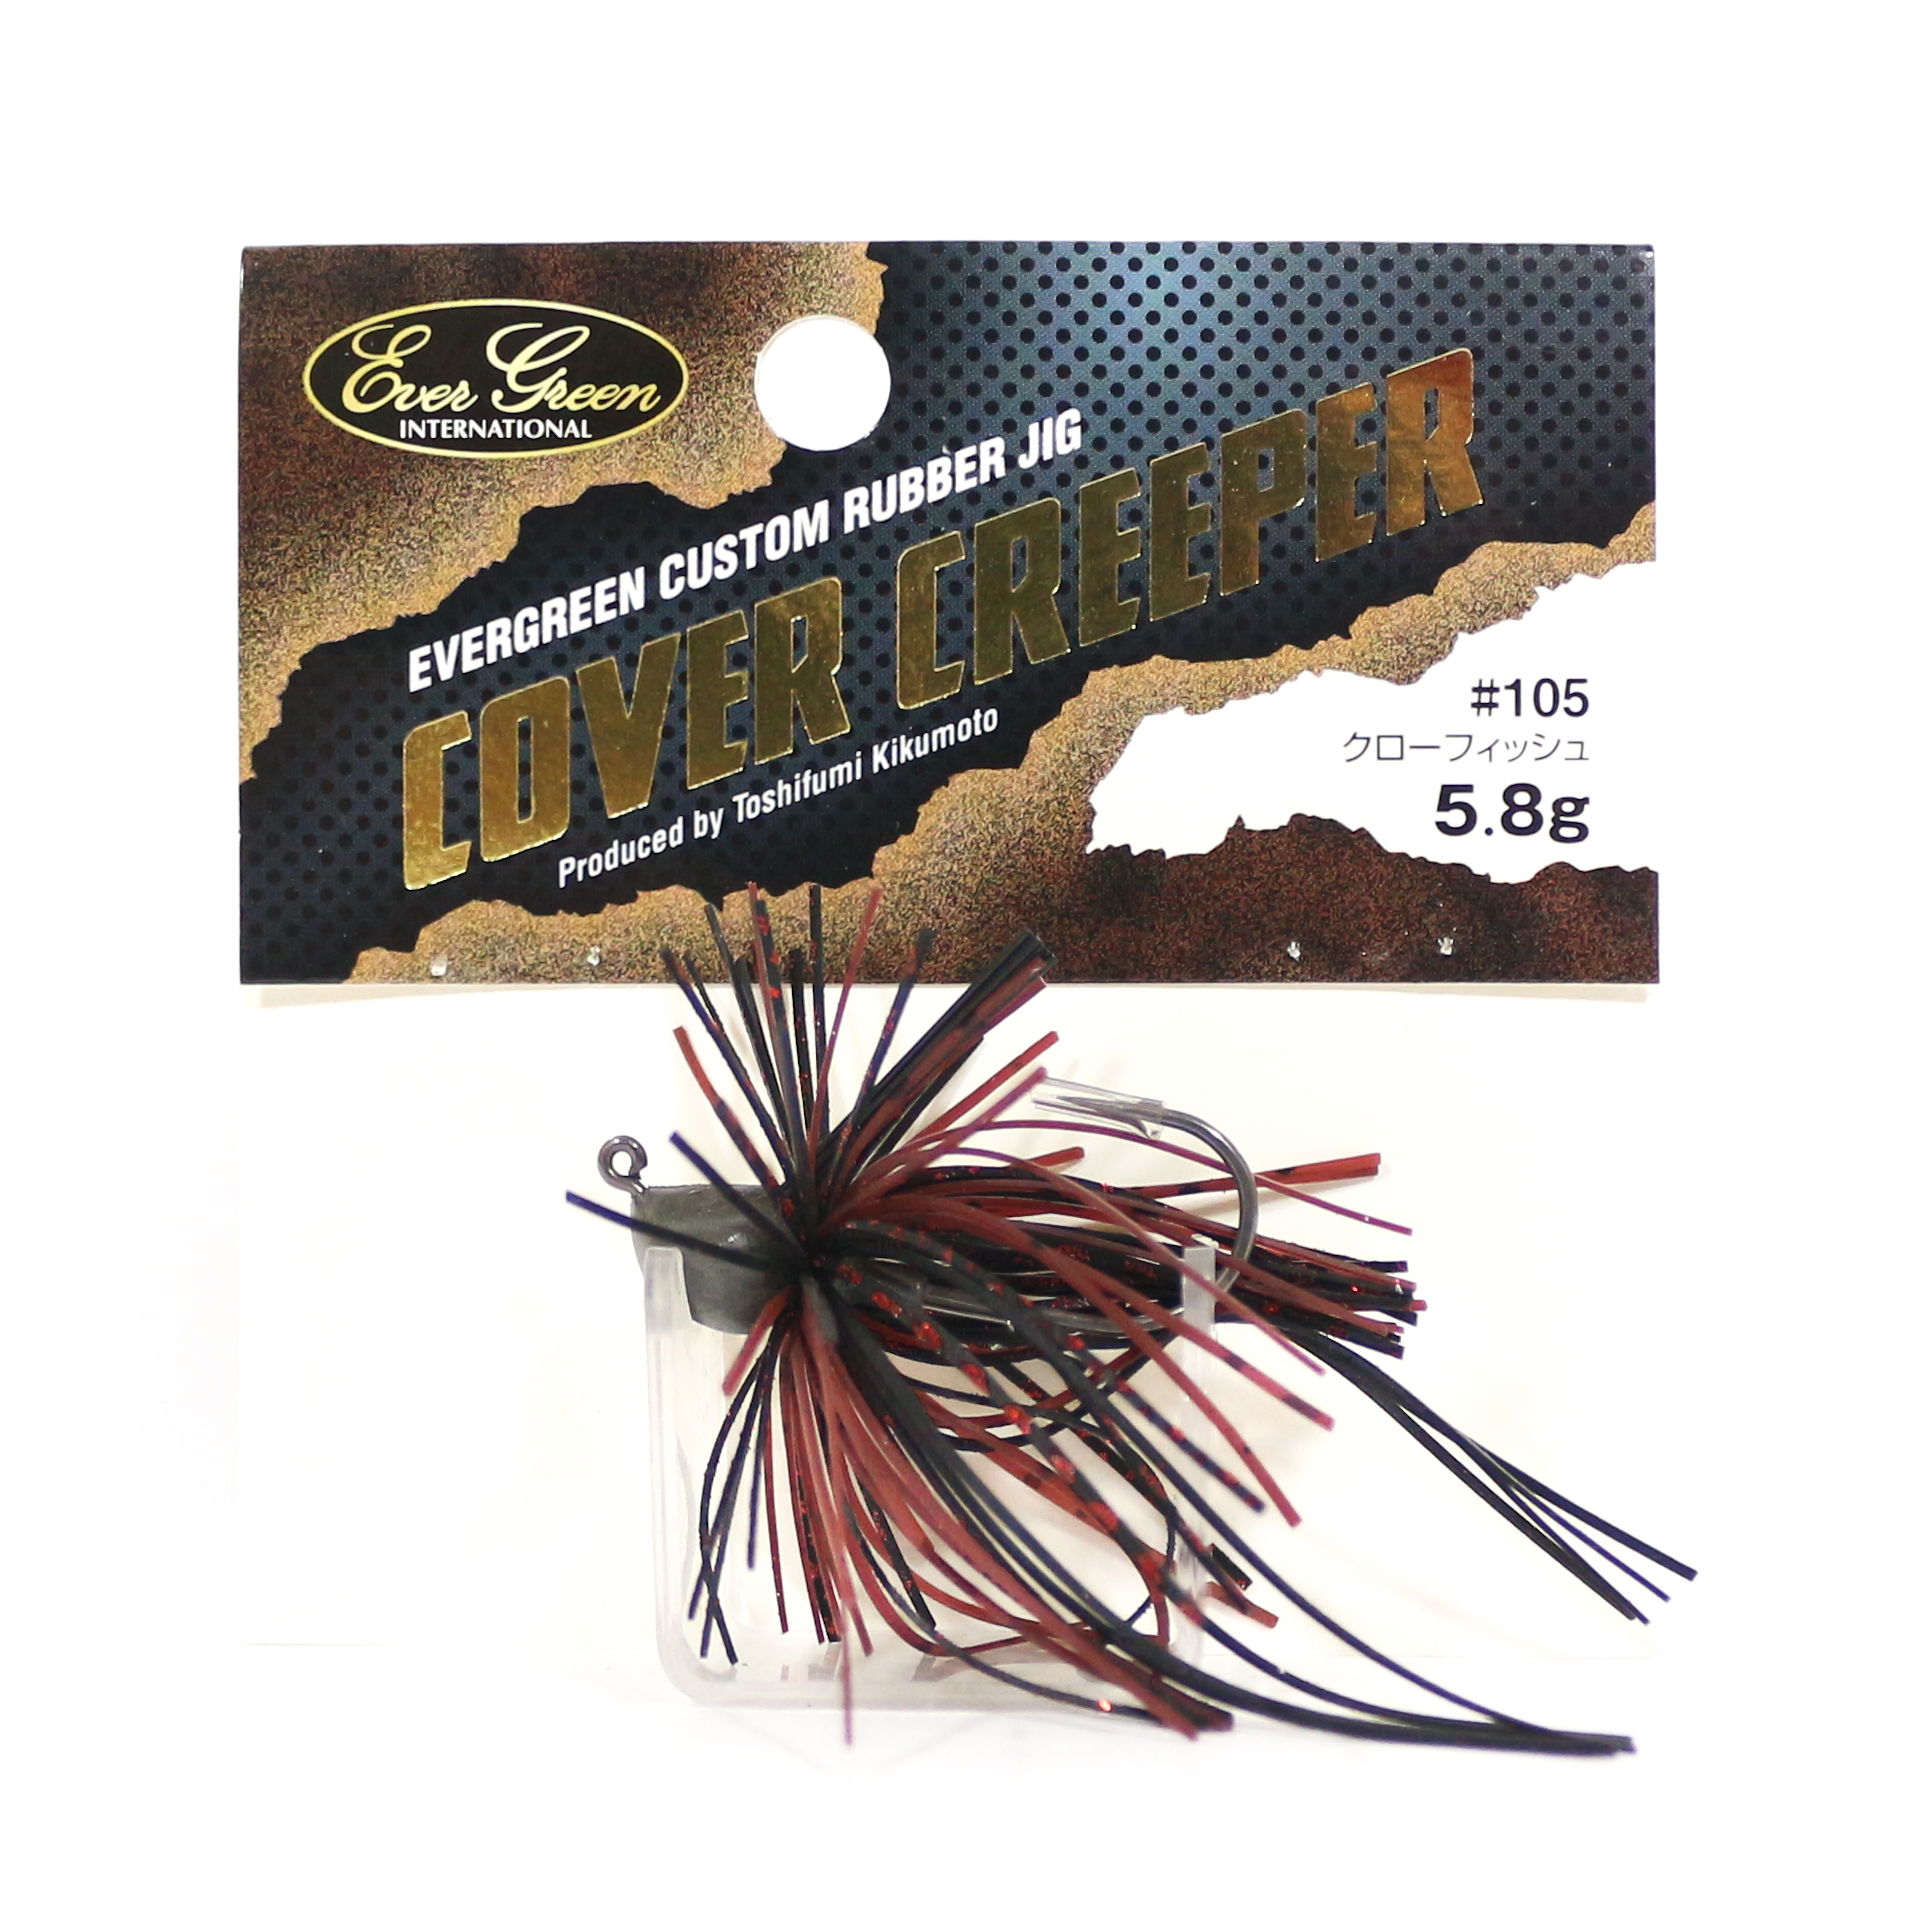 Evergreen Rubber Jig Cover Creeper 5.8g Sinking Lure 105 (3566)